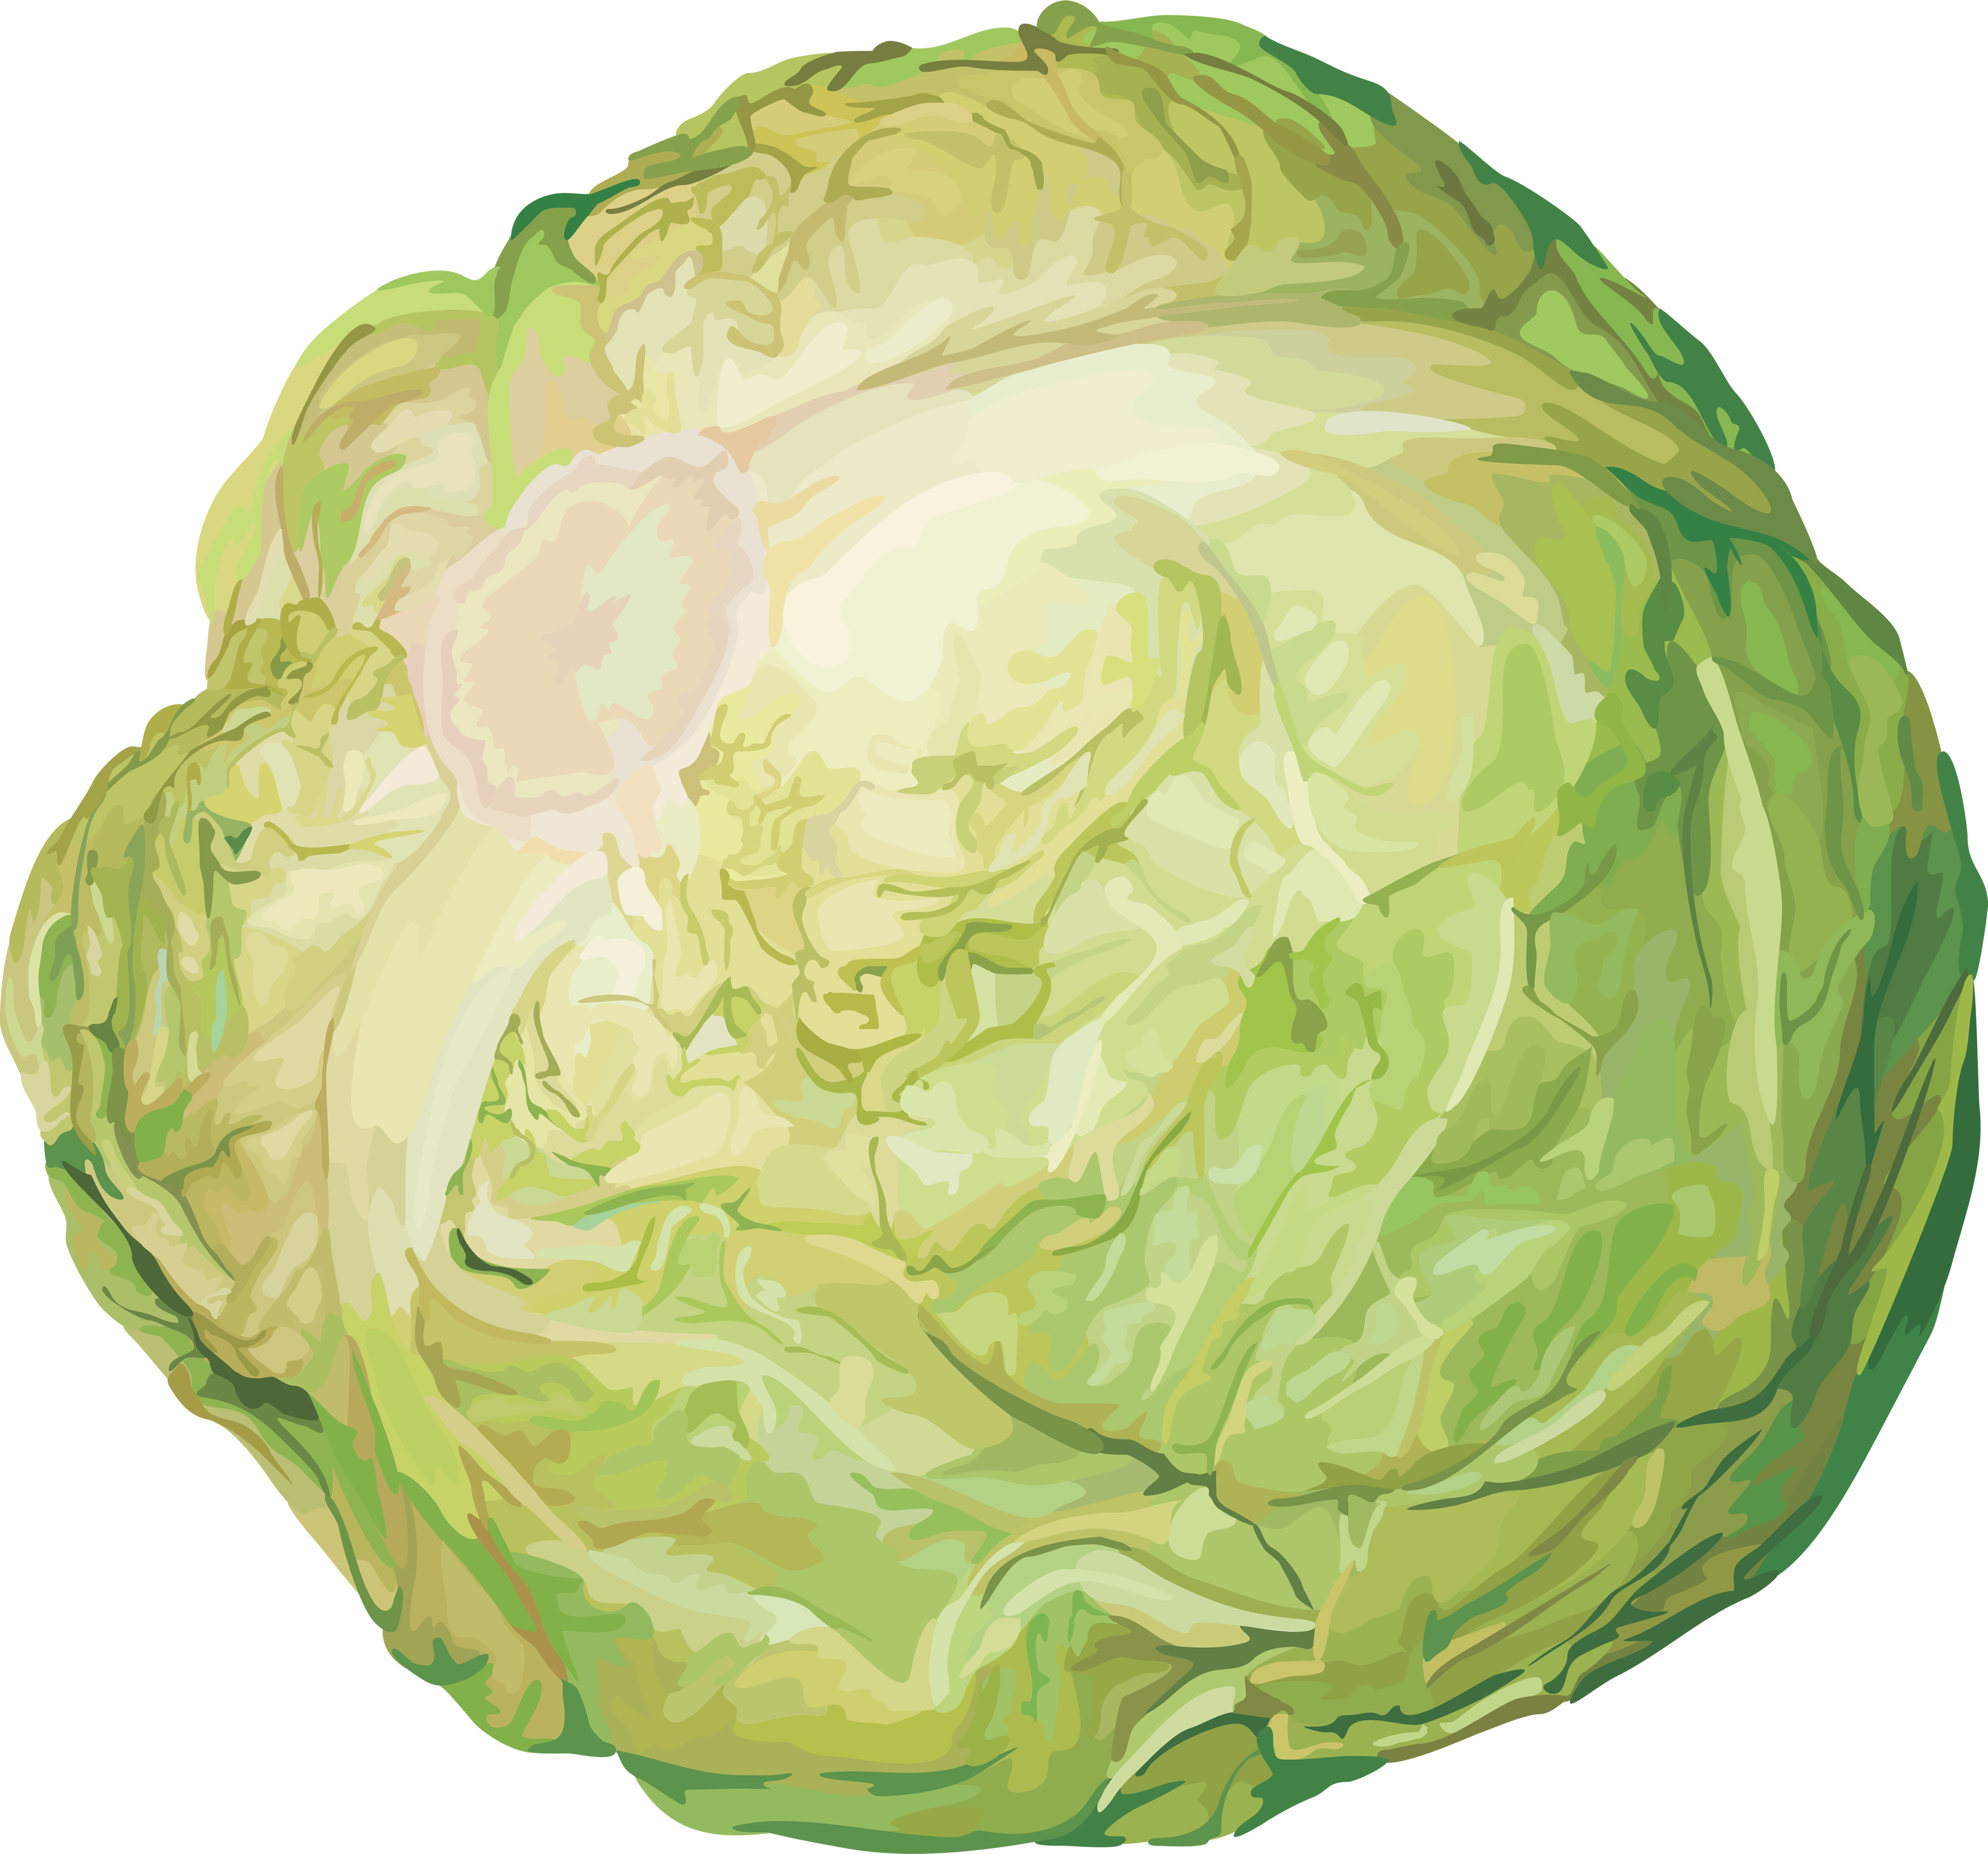 png library stock Png image free download. Cabbage clipart iceberg lettuce.